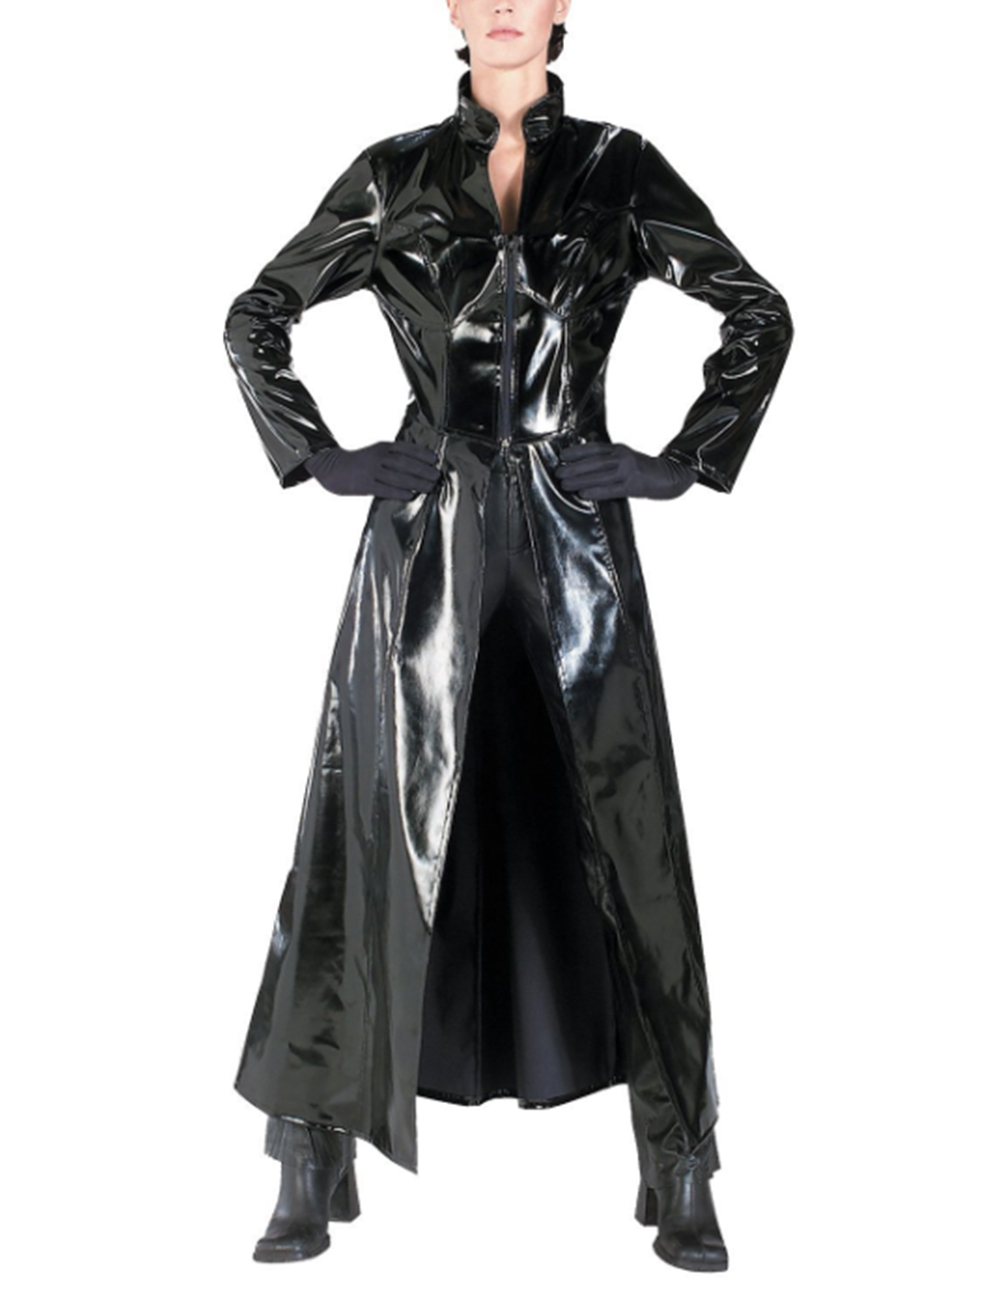 Unisex PVC Leather Matrix Coat Sexy Reloaded Trinity Reloaded Long Bodysuit Halloween Cosplay Adult Costume Black_L